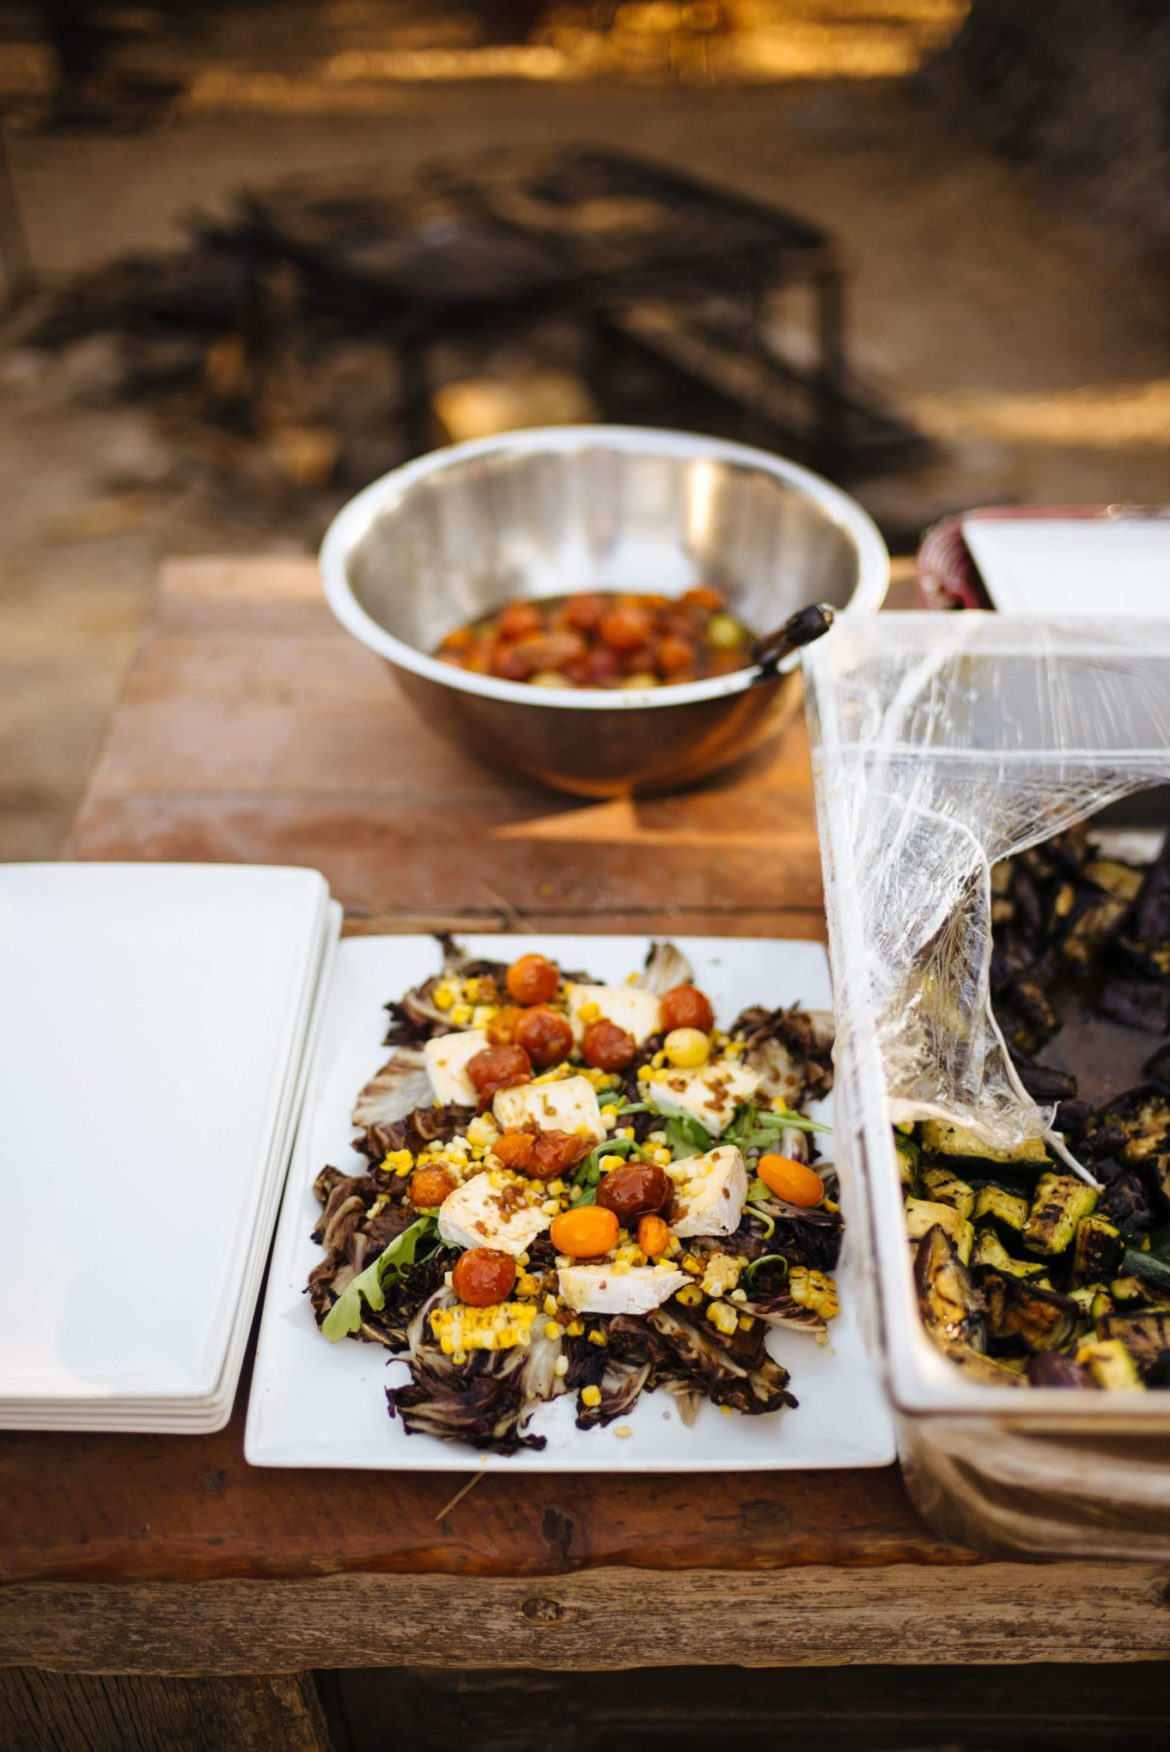 Greg Denton and Gabrielle Quiñónez-Denton make their Grilled Radicchio and corn salad with Mt Tam triple cream and roasted tomato vinaigrette at The Resort at Paws Up Cookbook Live during the chuckwagon, The Taste Edit